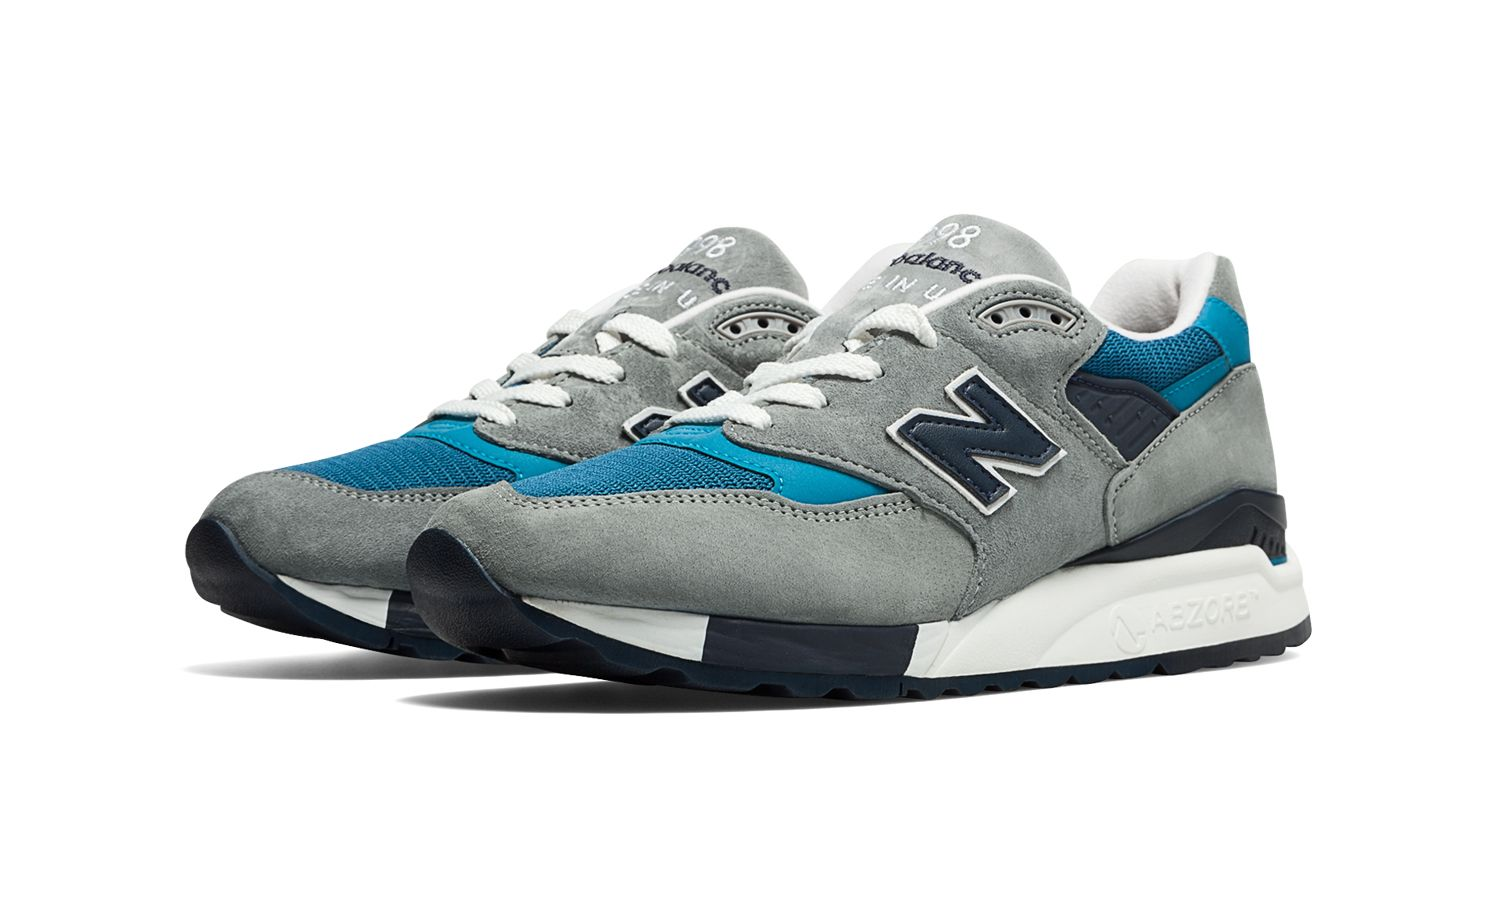 New Balance 998 Connoisseur Made in the USA